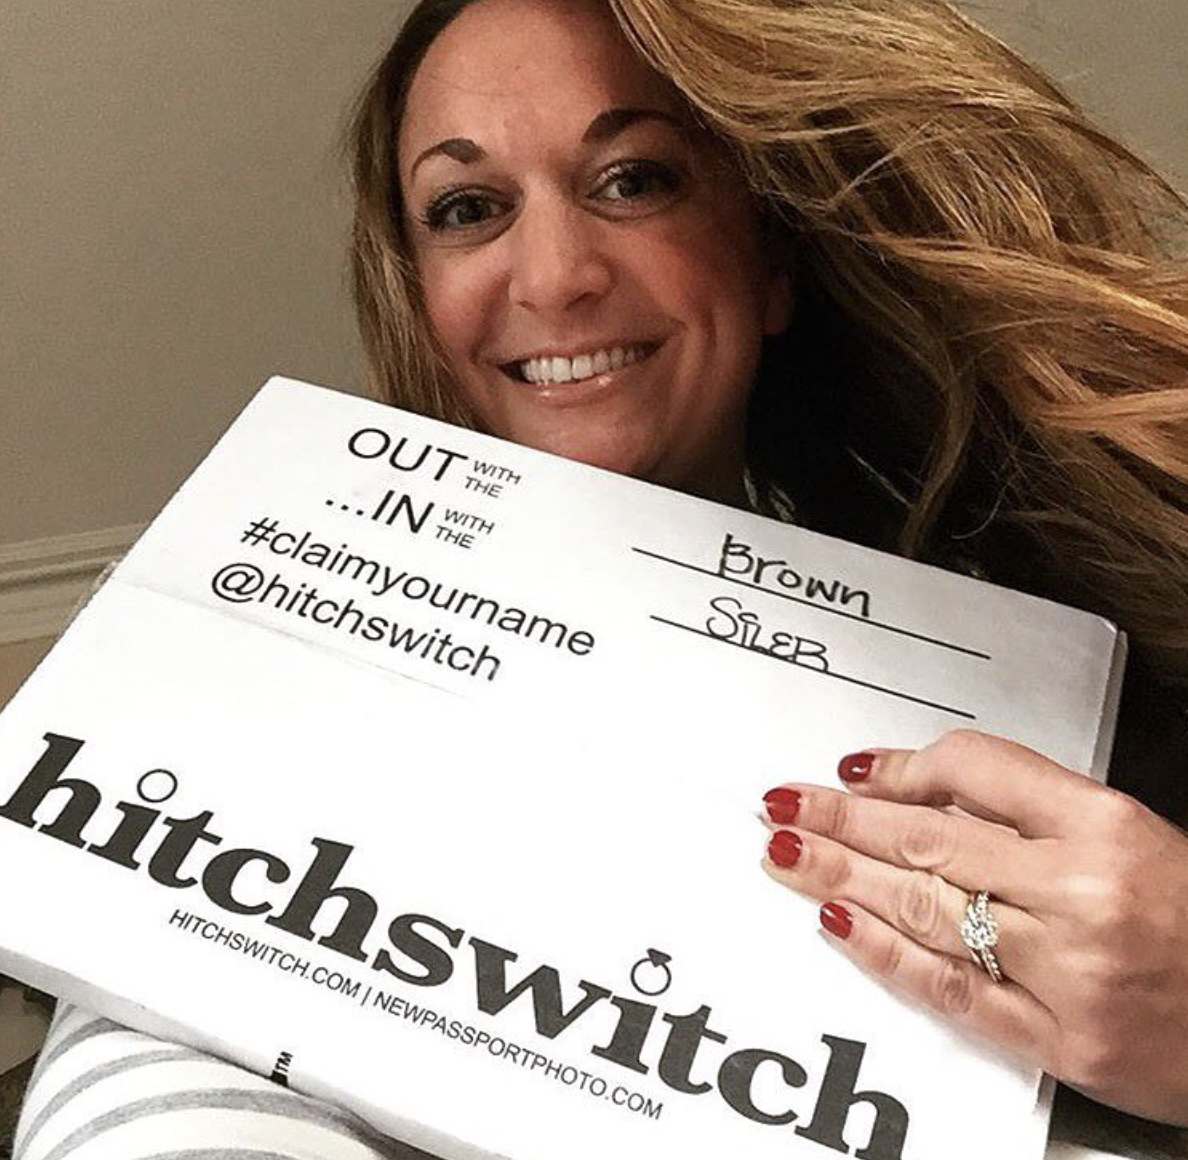 It's Friday, Time To #claimthatname 😍 #HitchSwitch